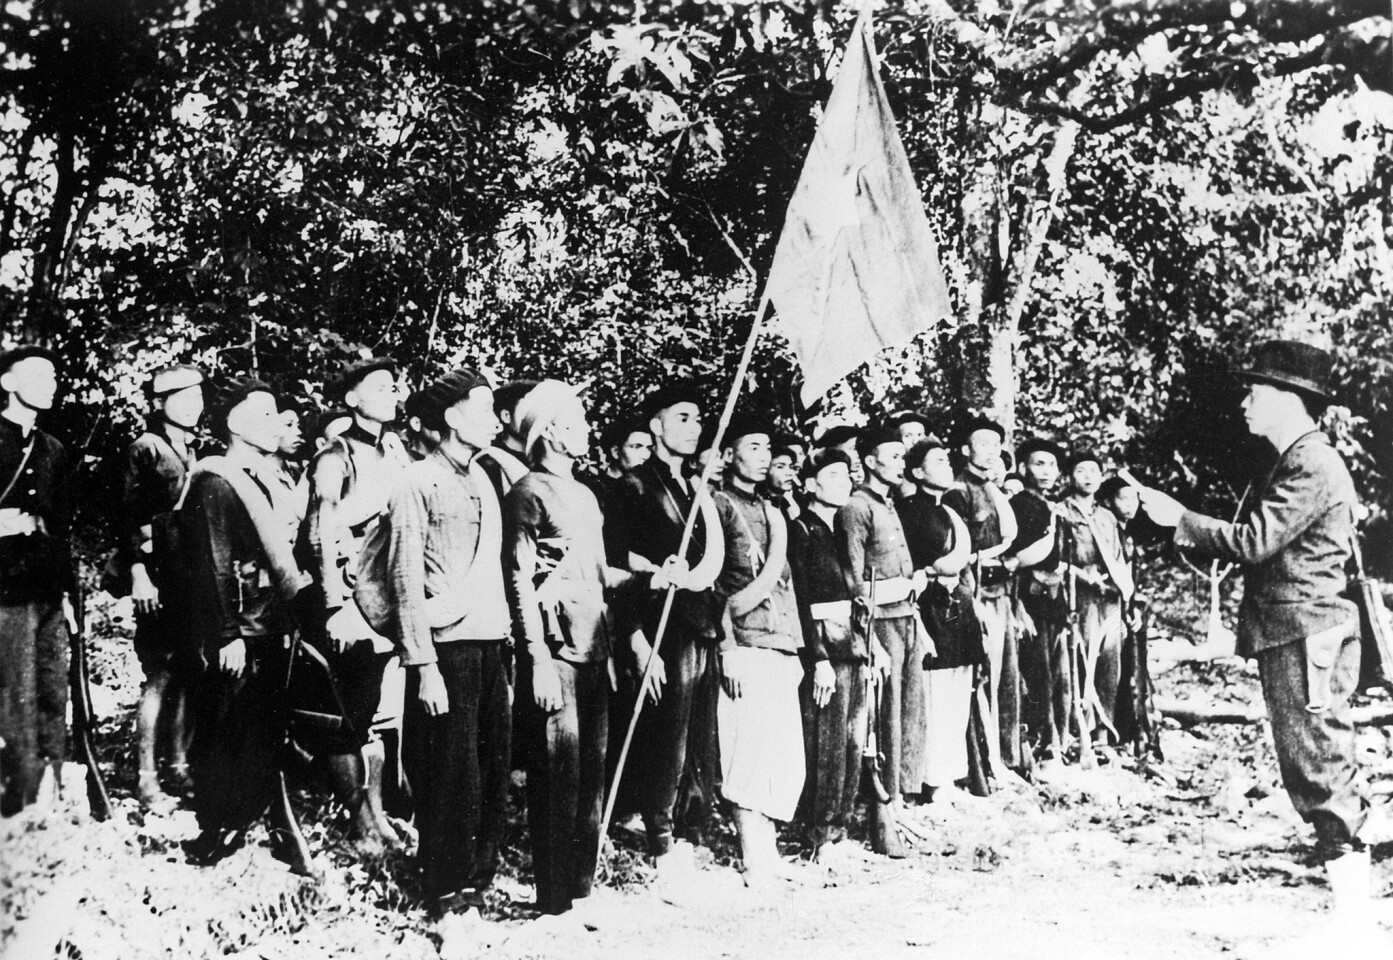 Gen. Vo Nguyen Giap, right, reads the first military order to the Vietnam Liberation Propaganda Army in Cao Bang province, Vietnam, in 1944.